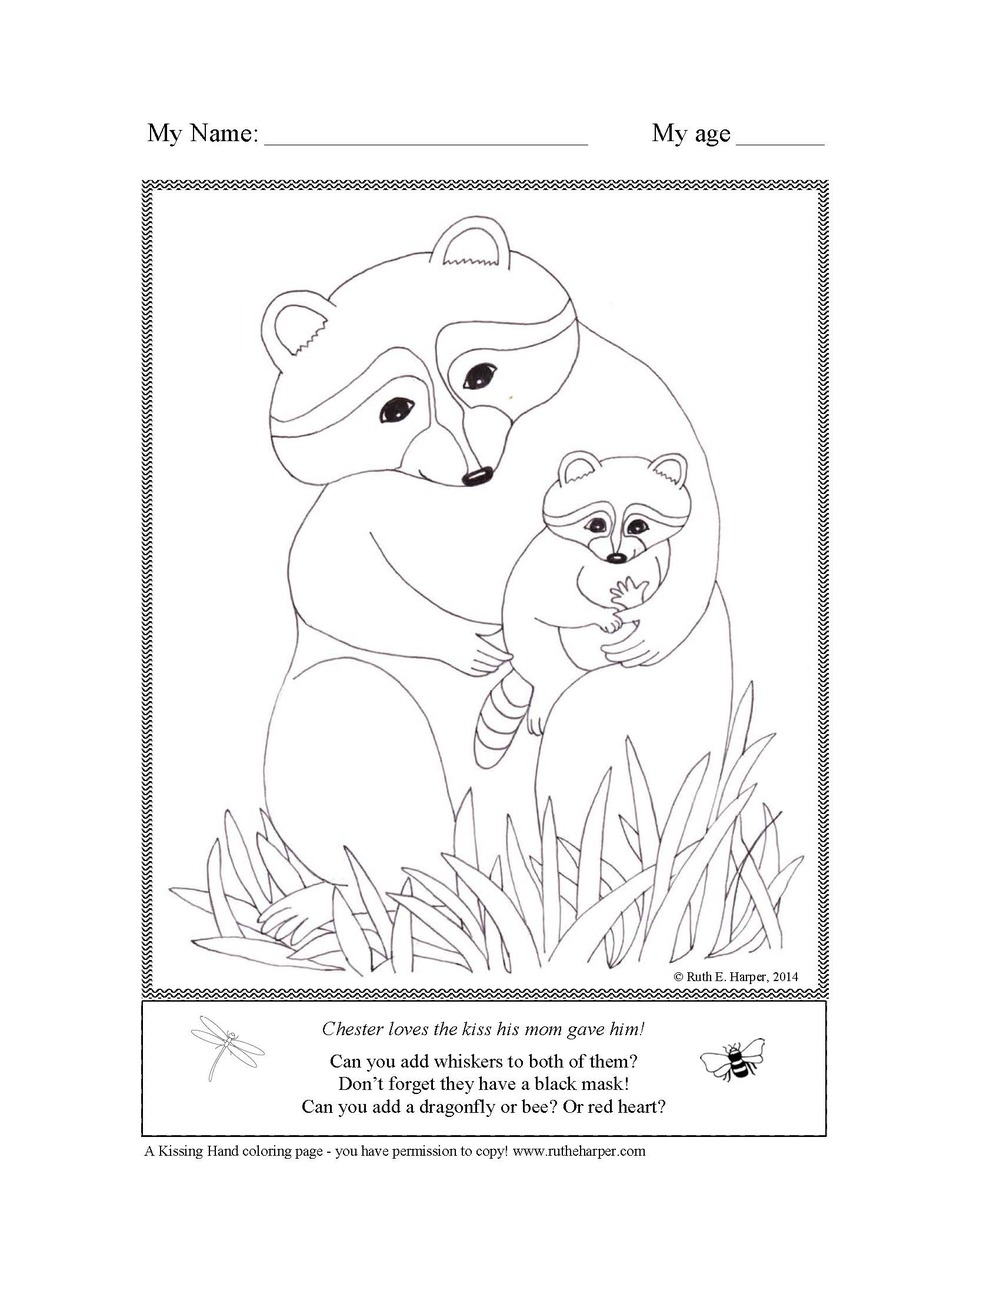 Kissing Hand Coloring Pages — Ruth E. Harper